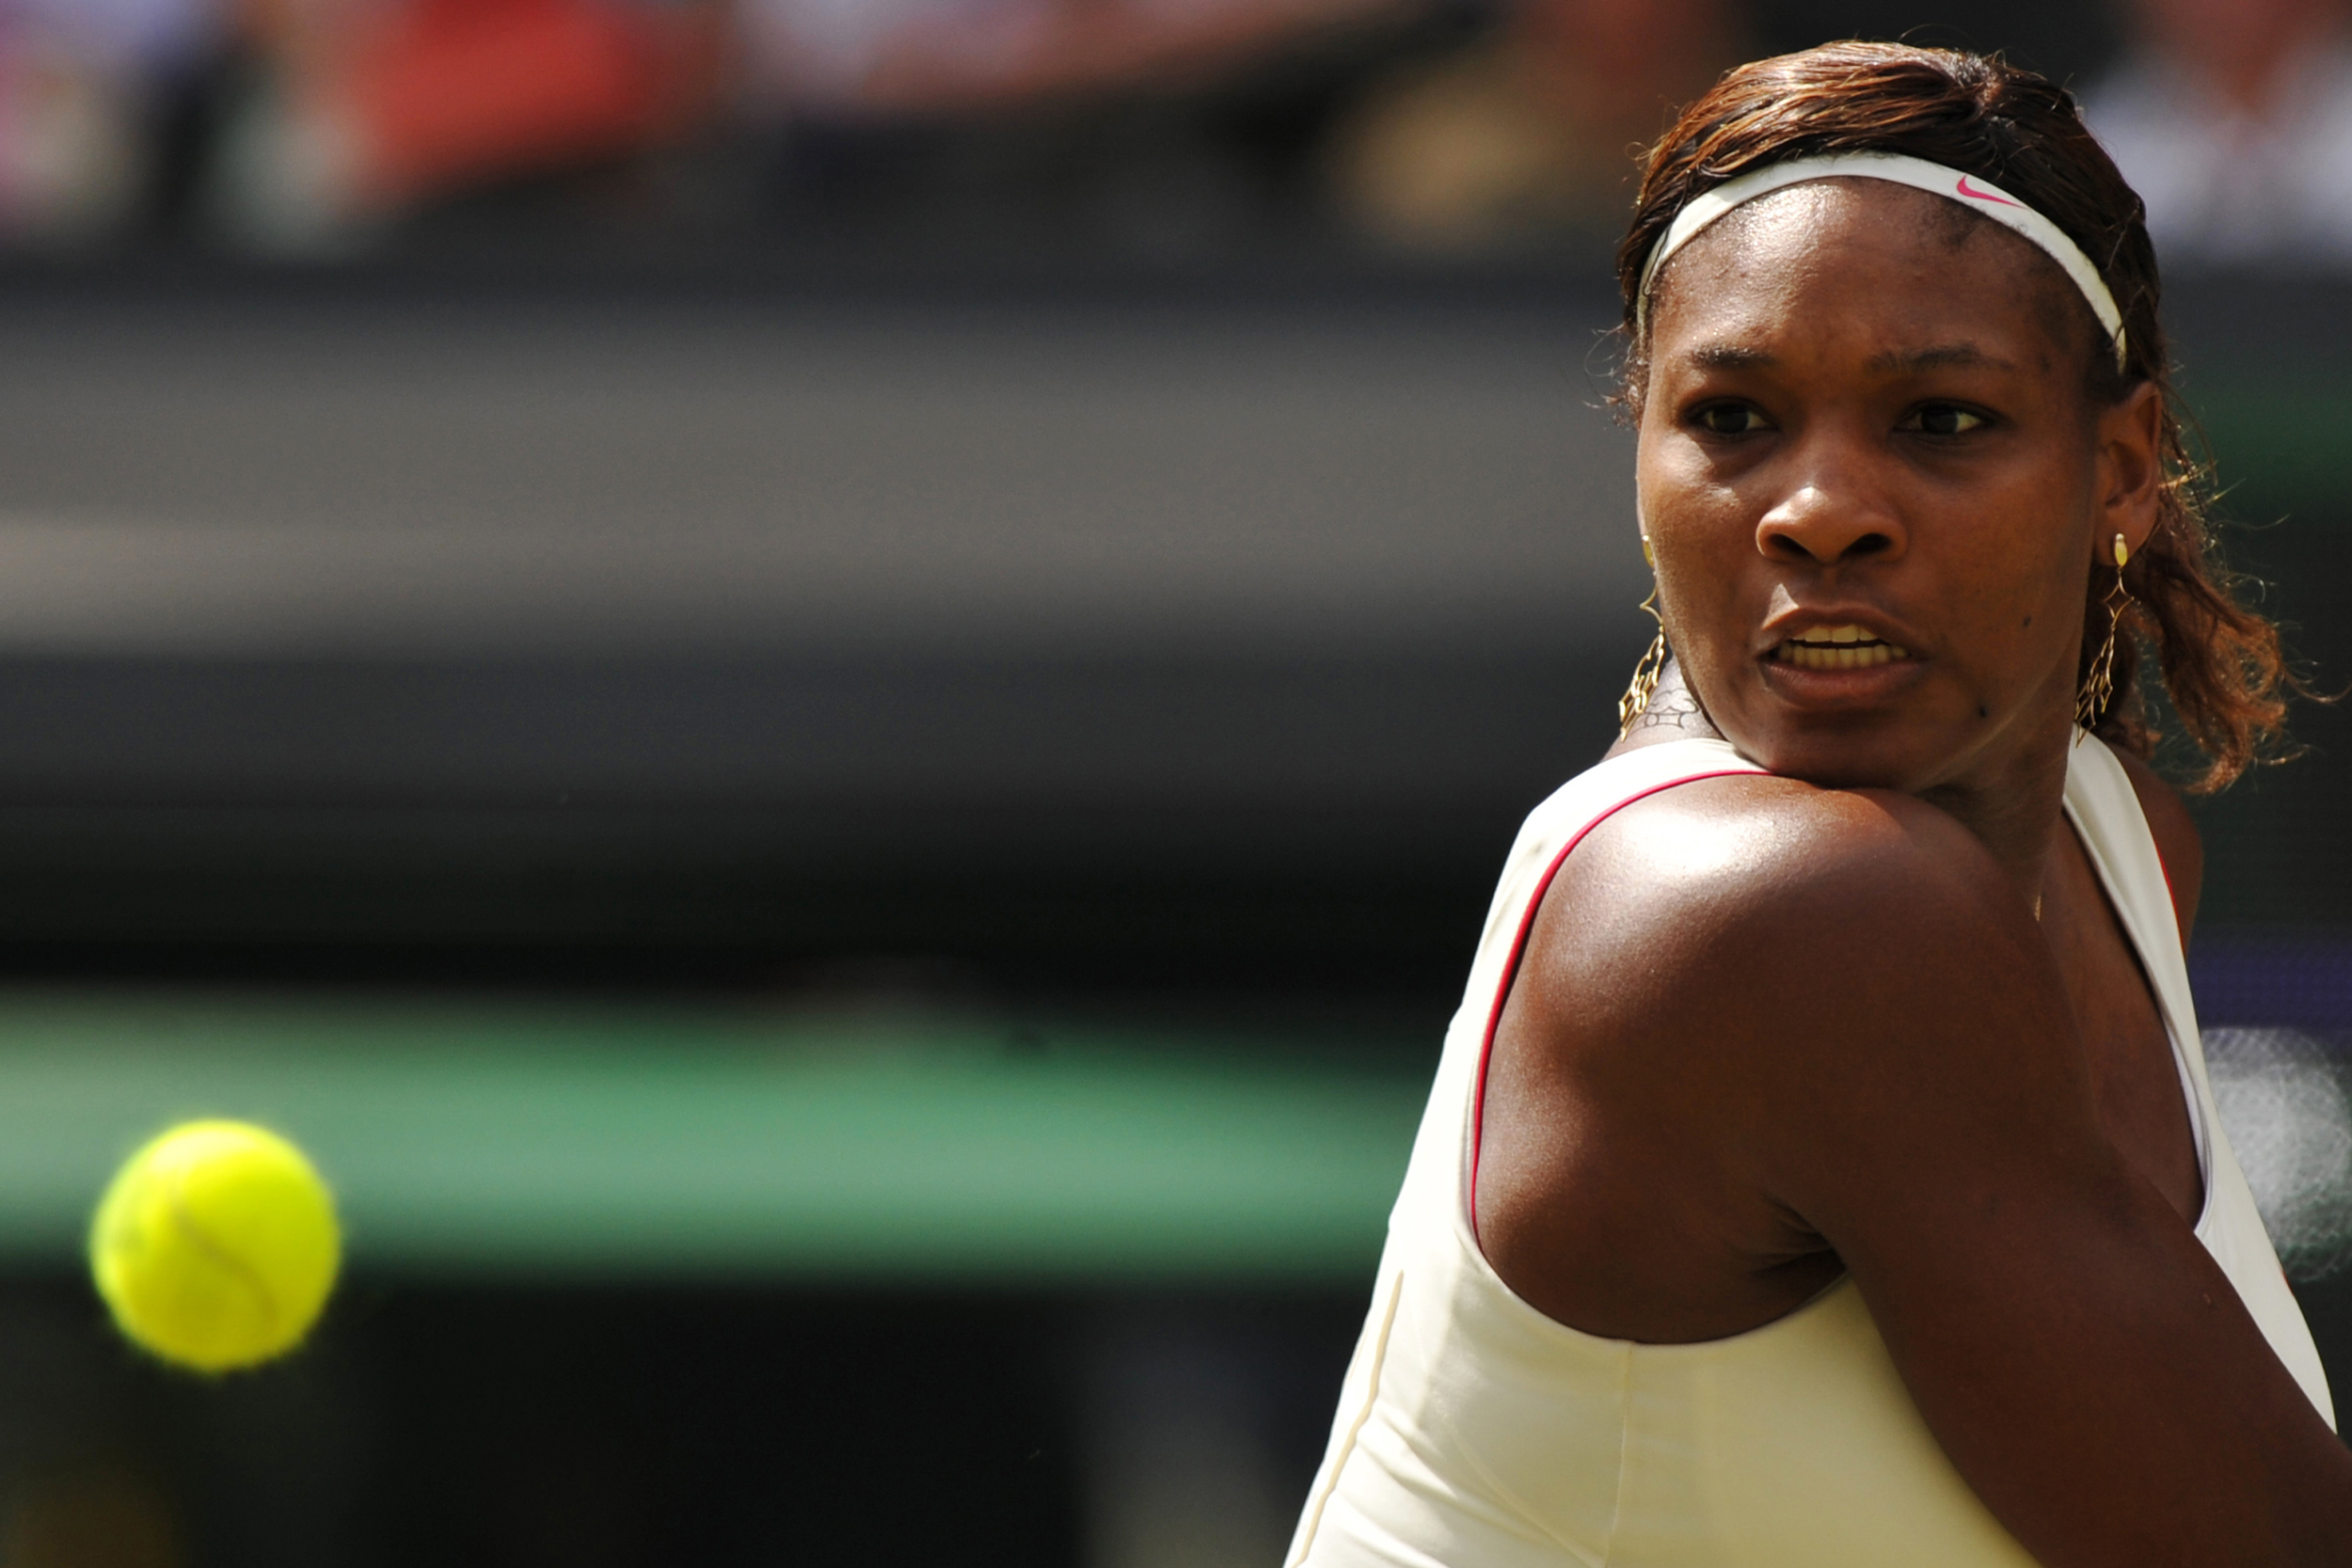 Romanian Tennis Star Under Fire for Alleged Racial Remark About